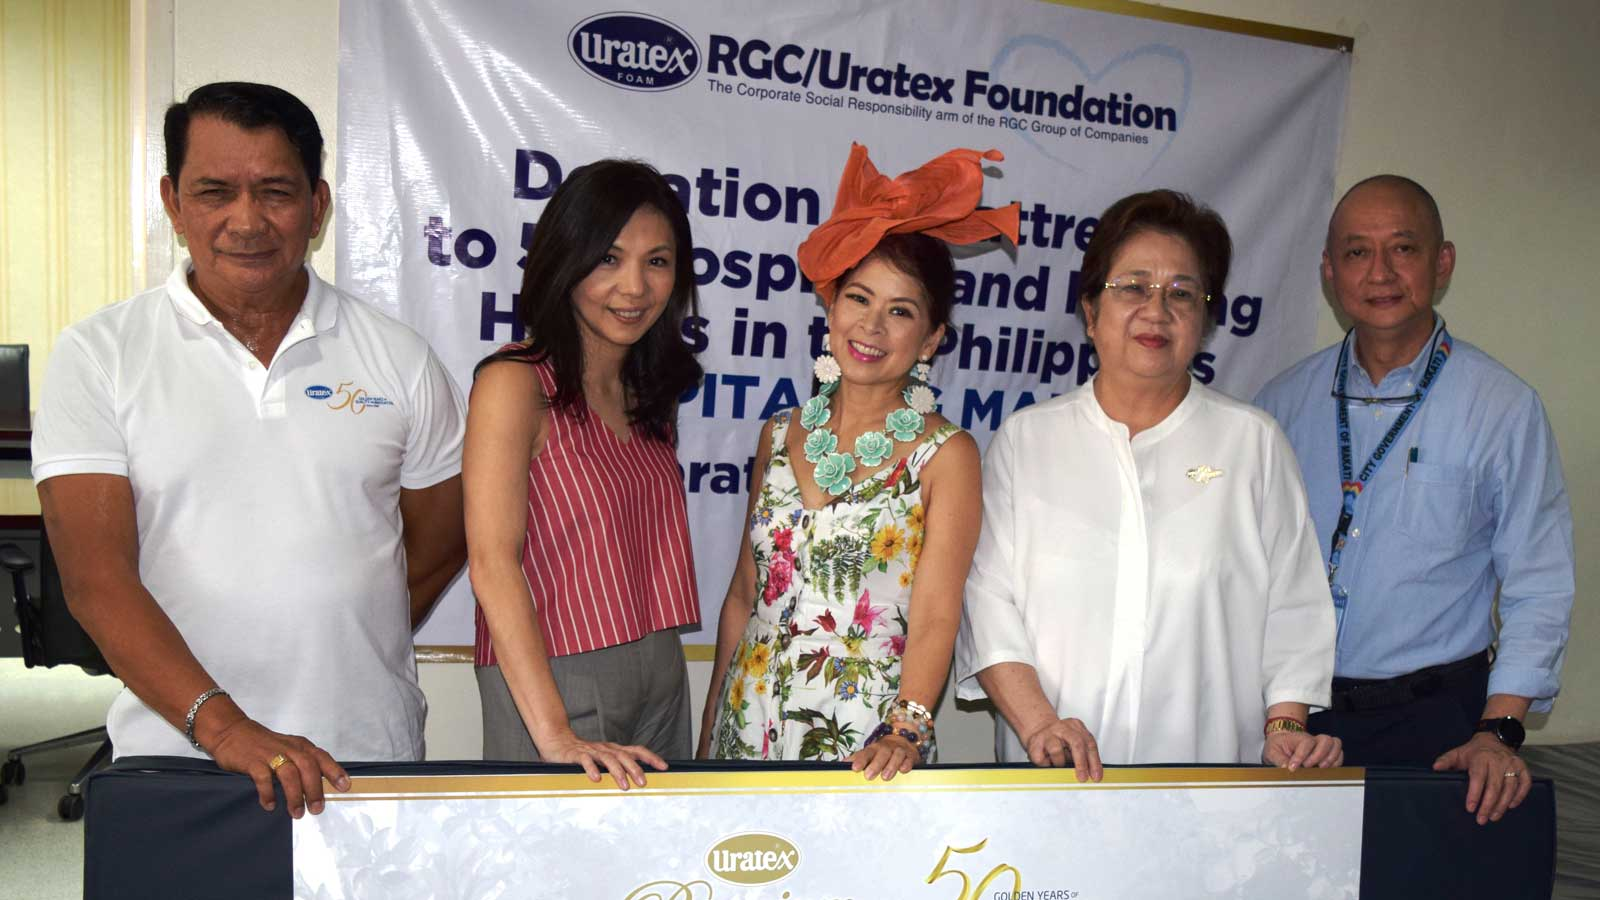 Tessa and Kaye partner with Uratex for meaningful CSR